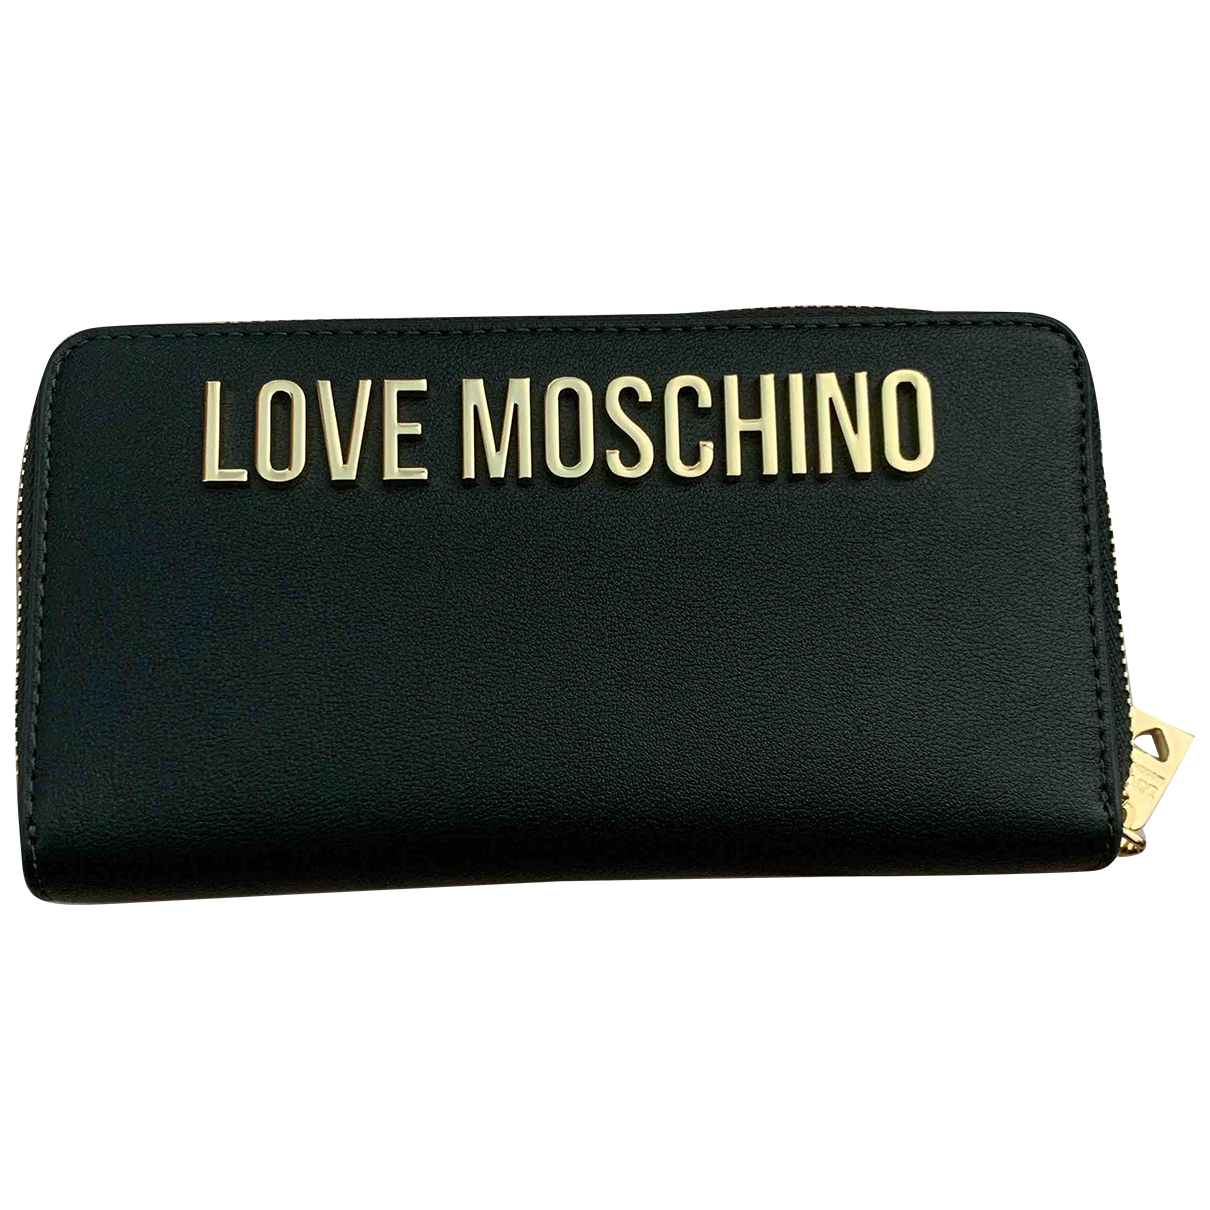 Cartera de Cuero Moschino Love